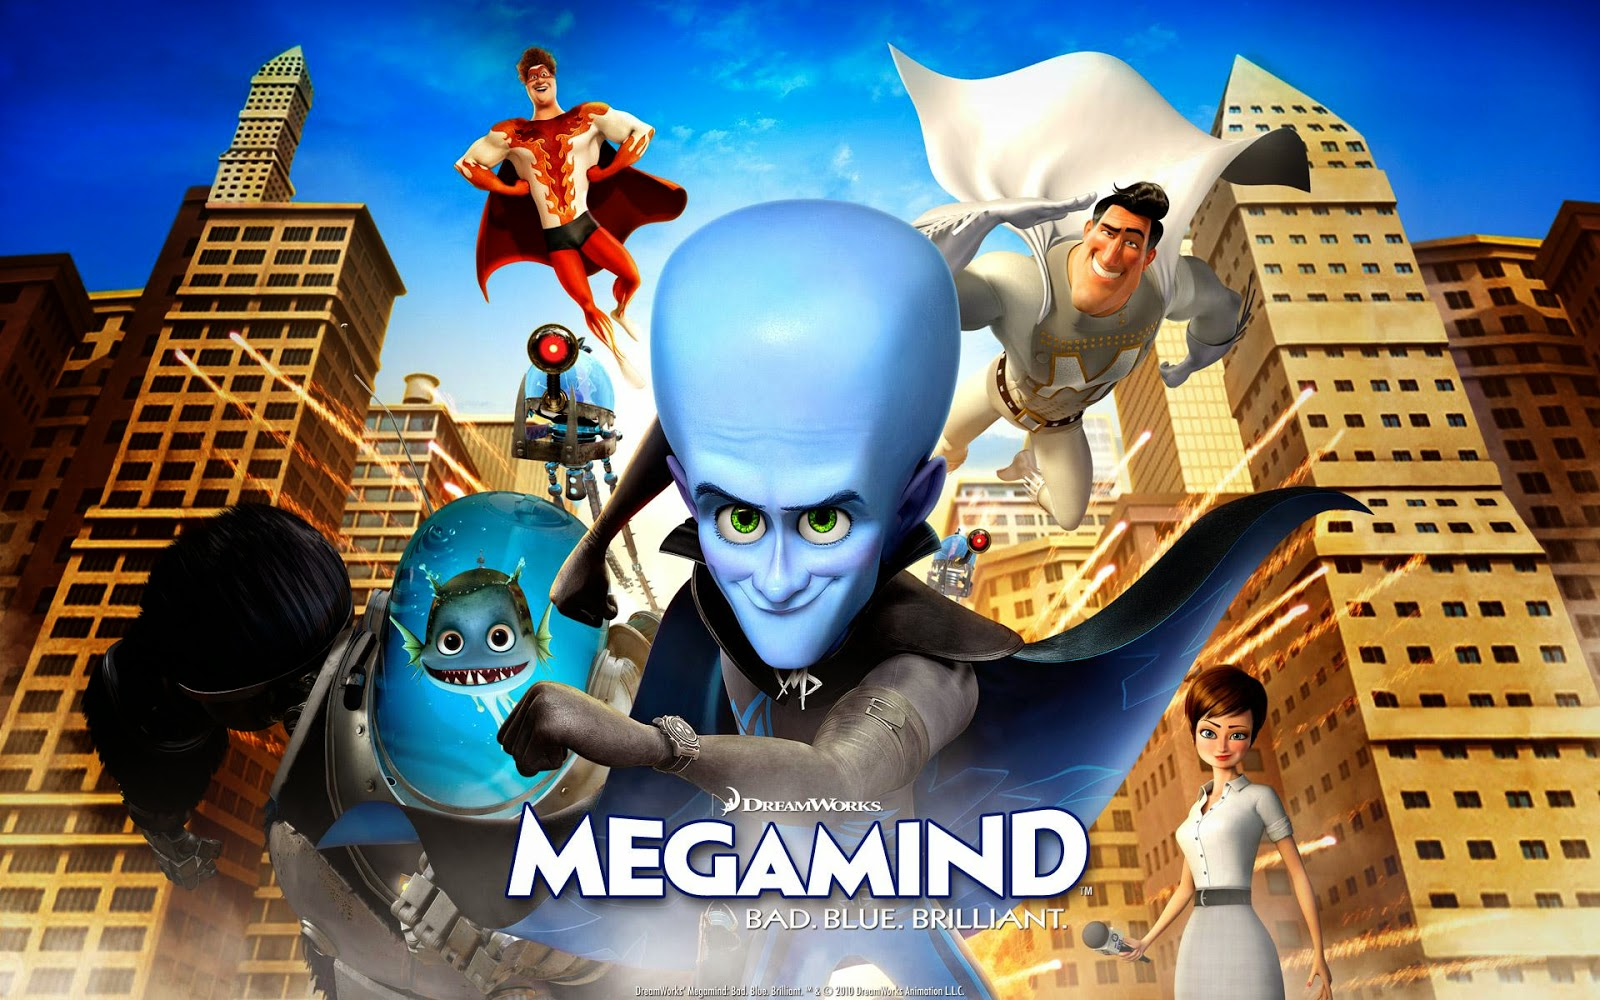 Megamind {Hin-Eng} Anime Movie Online, Download Anime ...